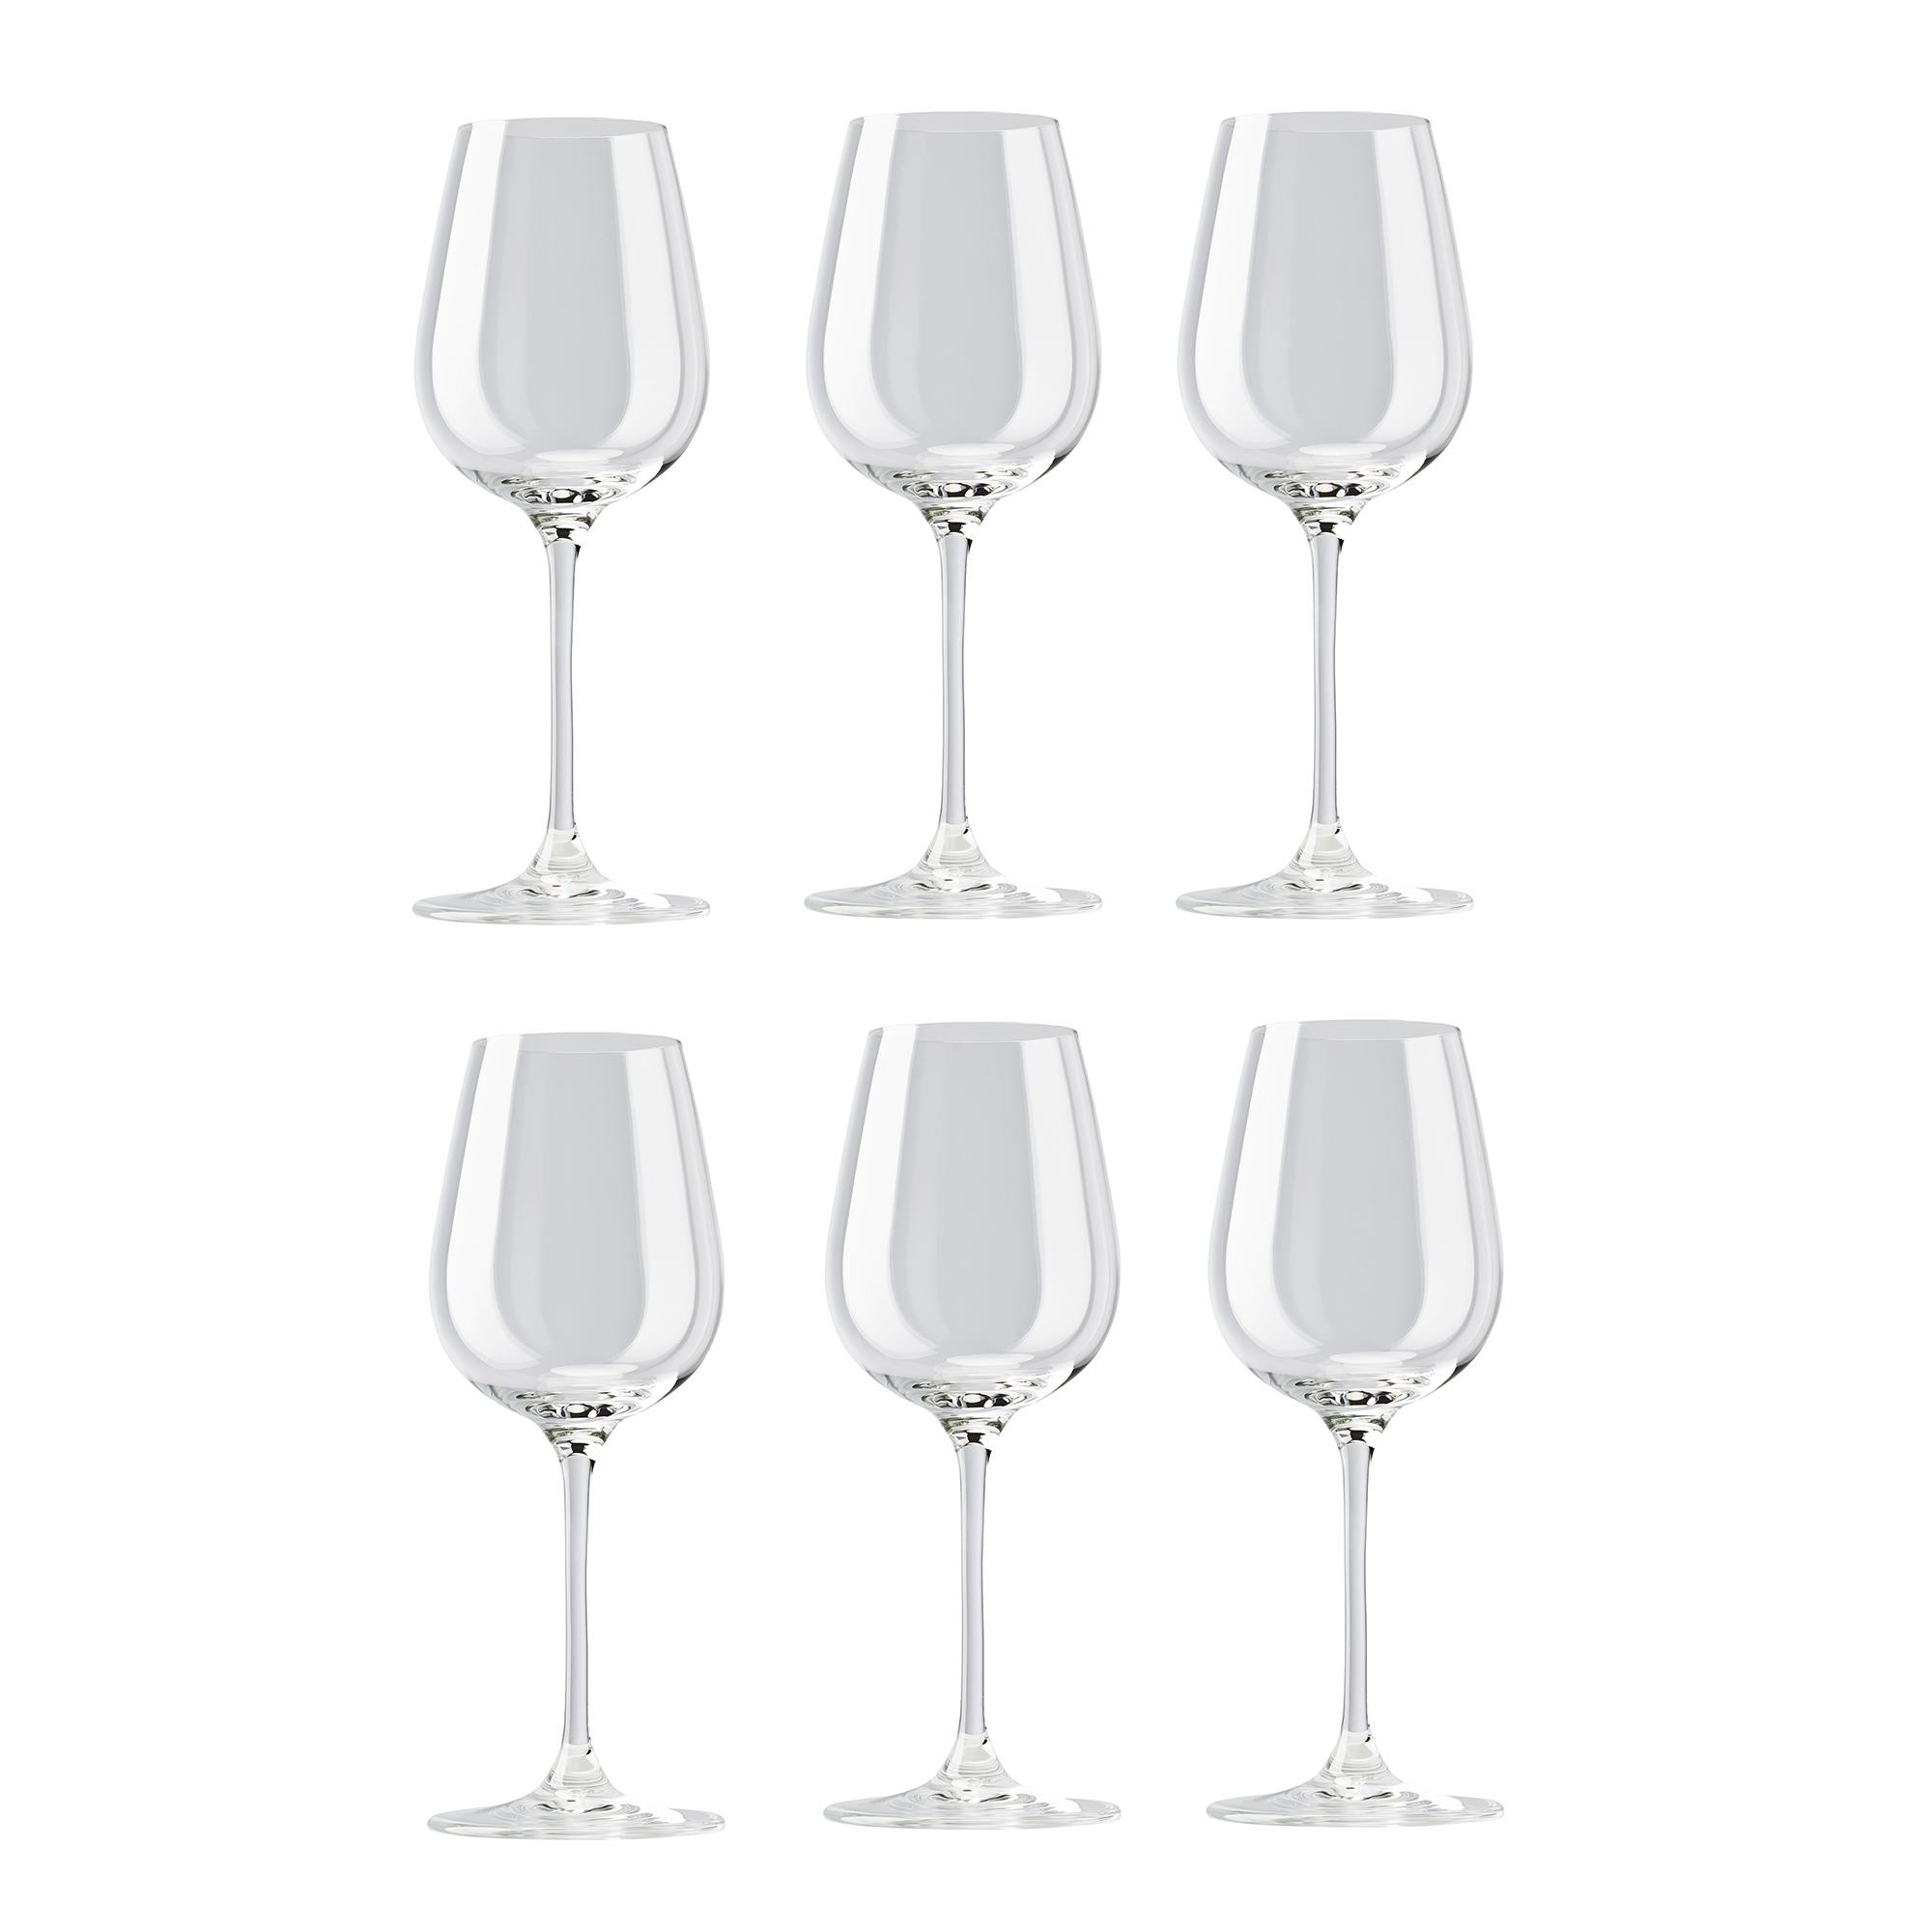 Weinkelch Glas Divino White Wine Goblet Set Of 6